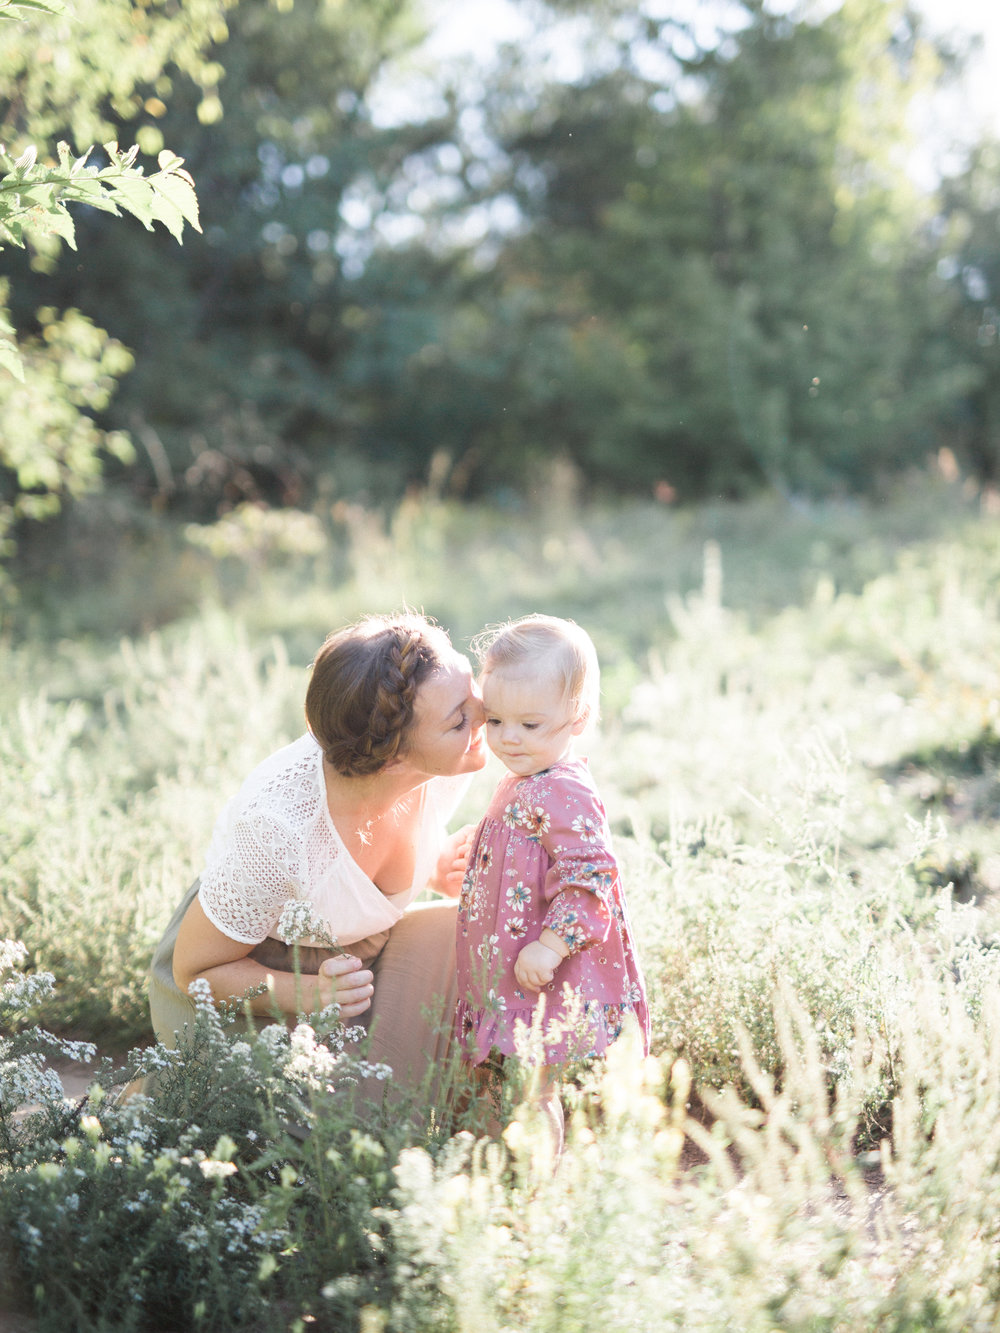 Elza Photographie - Toronto baby photographer - Film and digital - Bright and airy - Mastin Labs - Motherhood